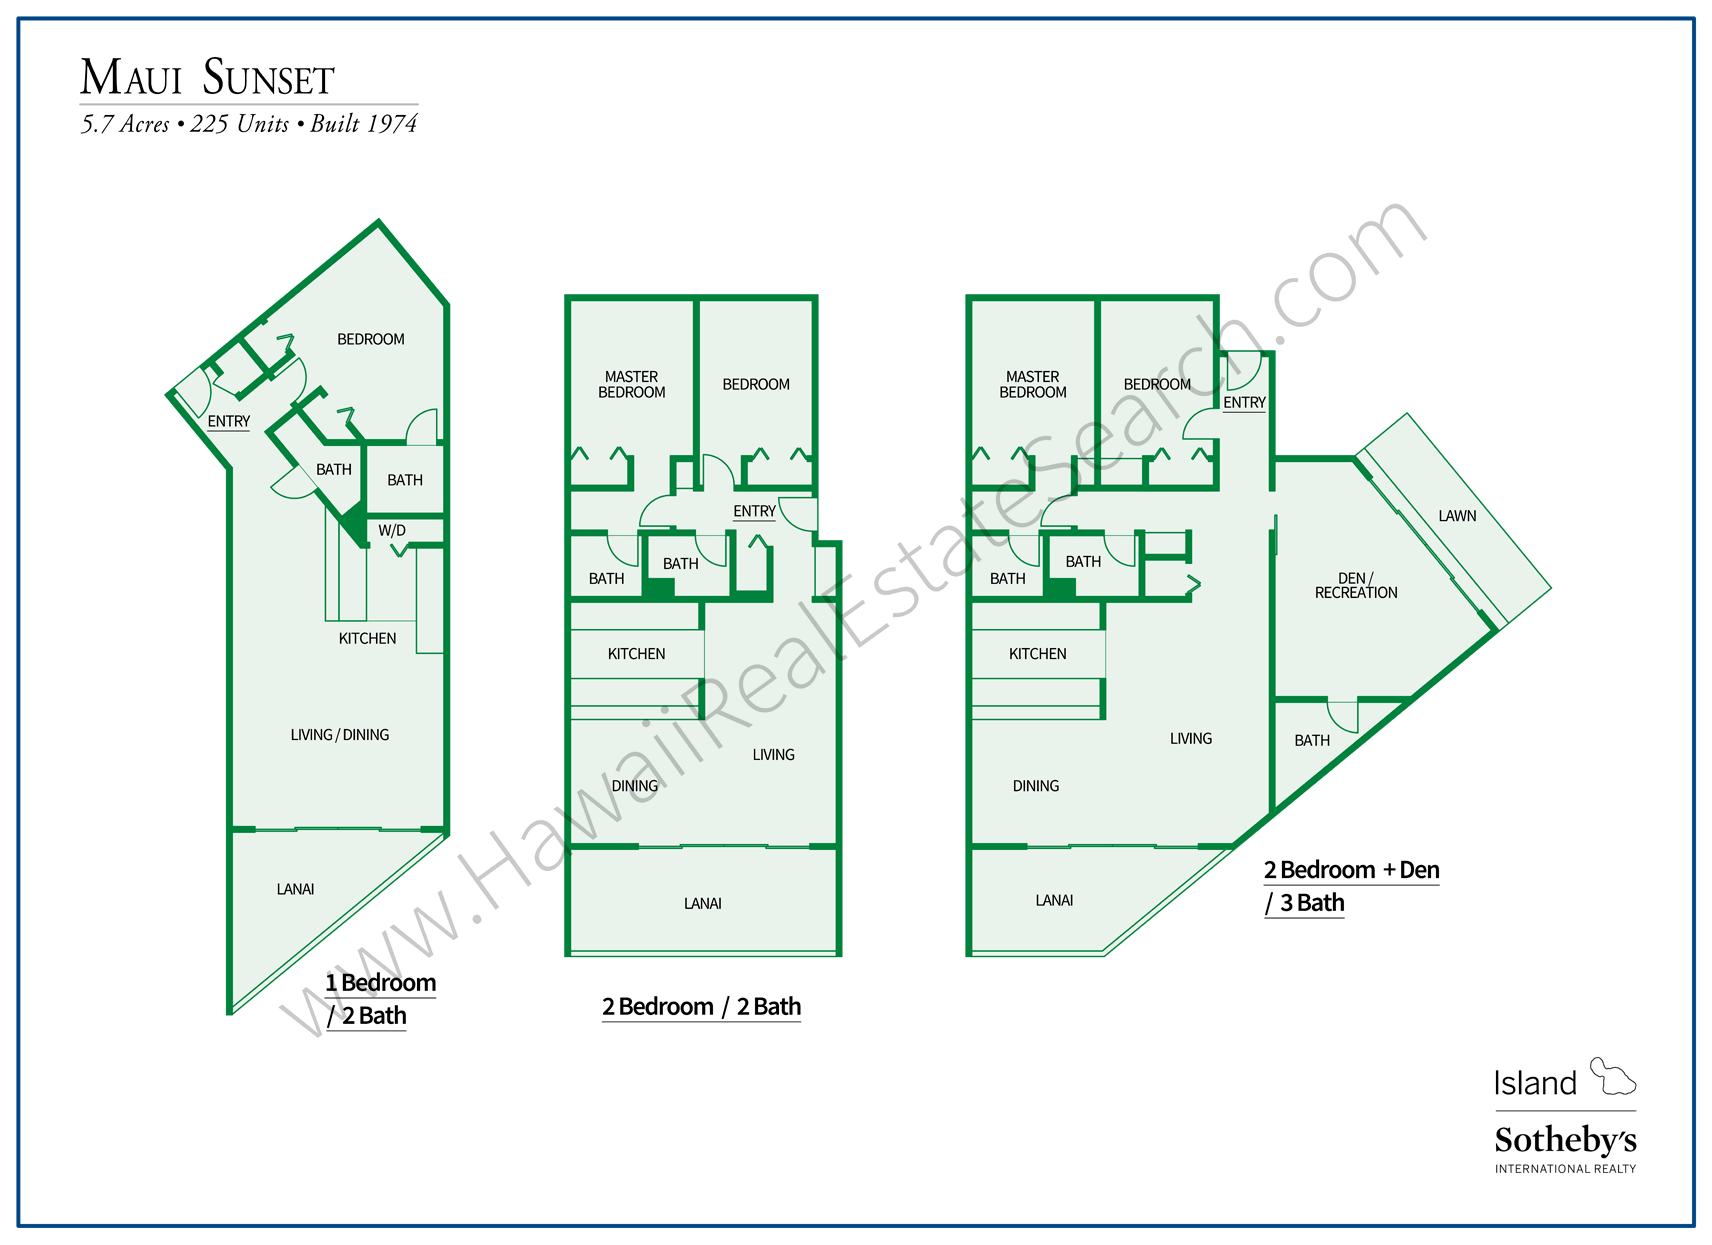 Maui Sunset Floor Plans Updated